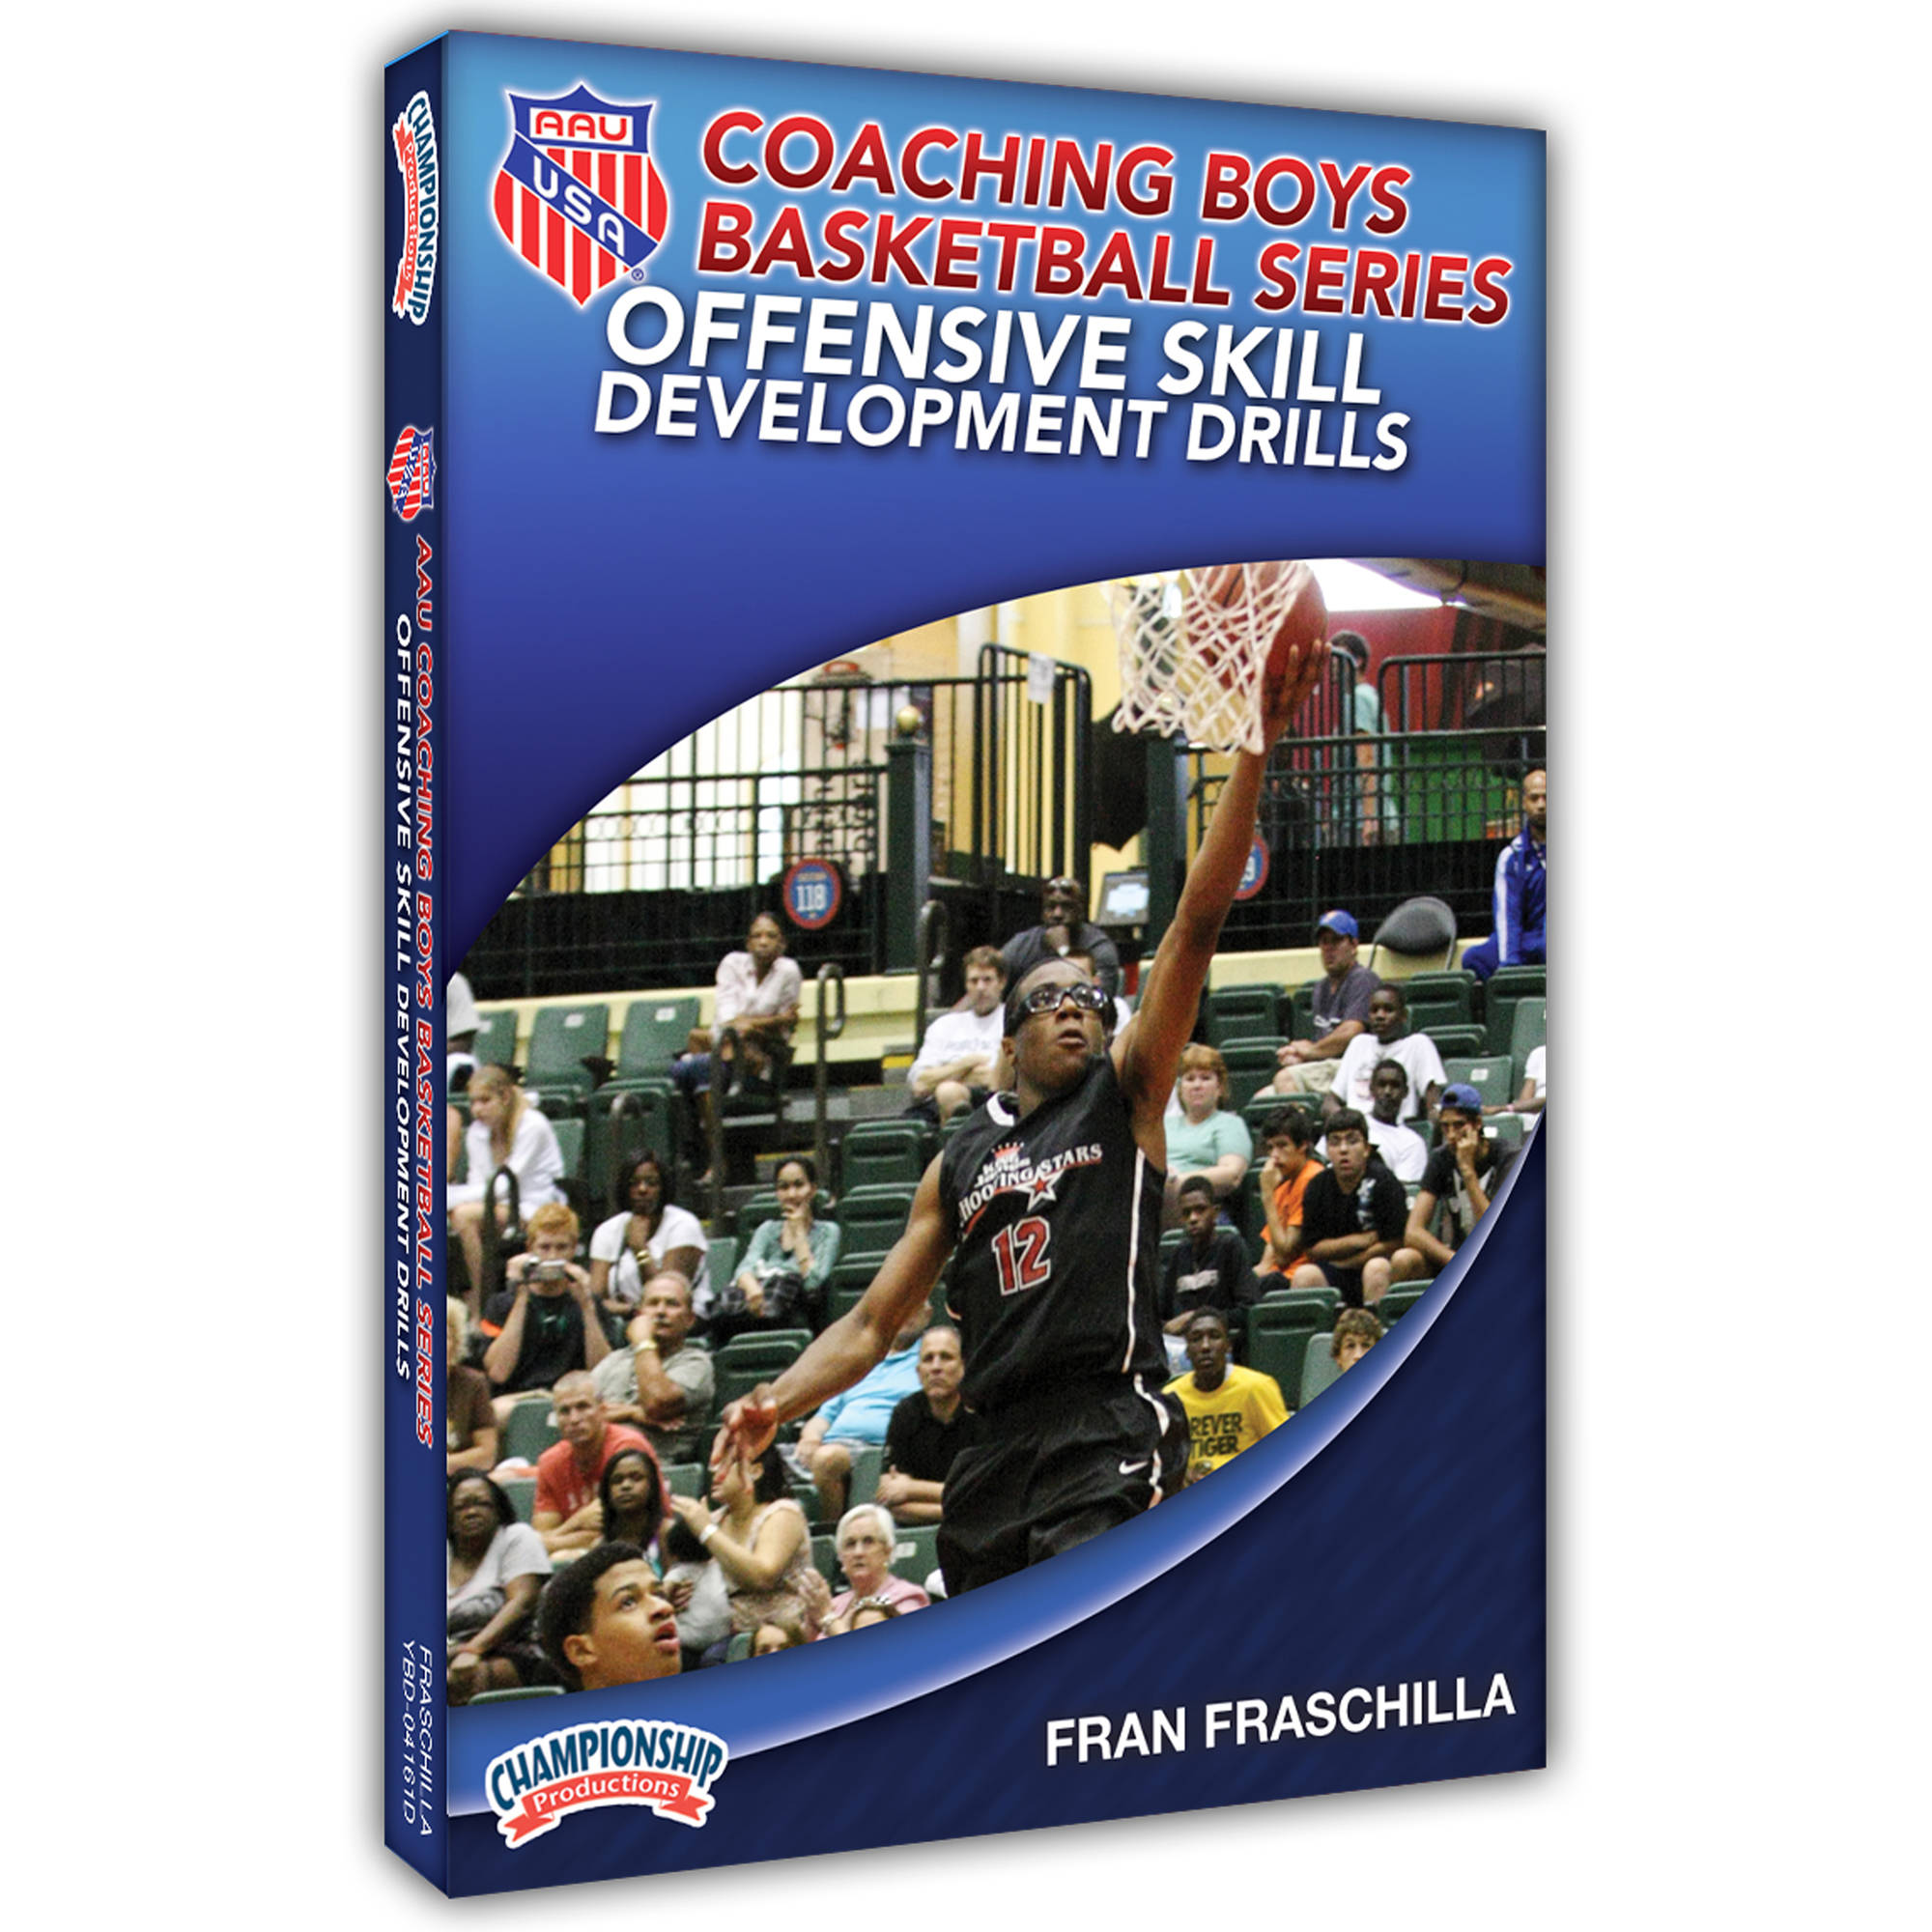 AAU Coaching Boys Basketball Series: Offensive Skill Development Drills by Championship Productions